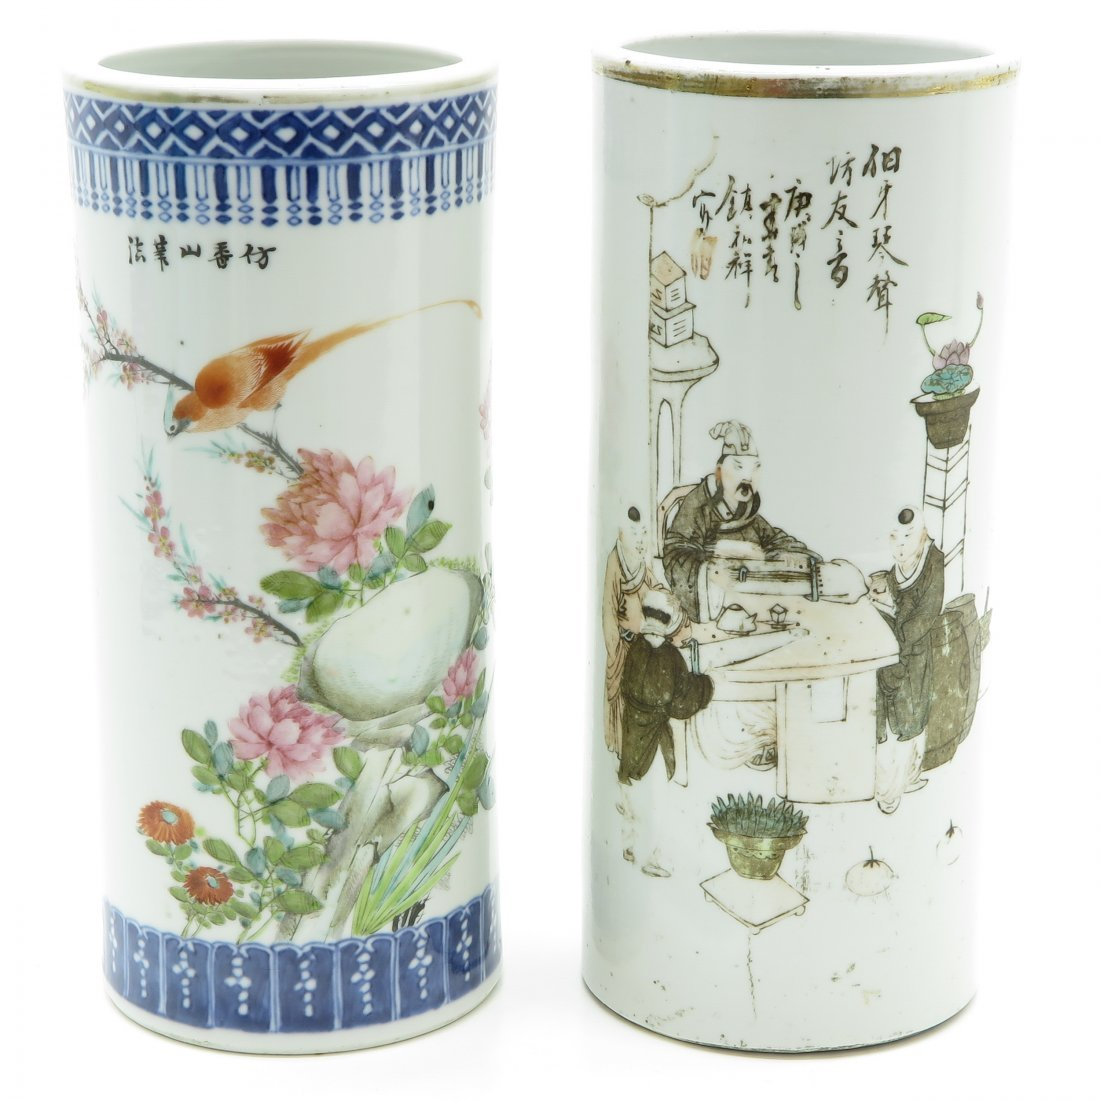 Lot of 2 China Porcelain Cylinder Roll Wagon Vases